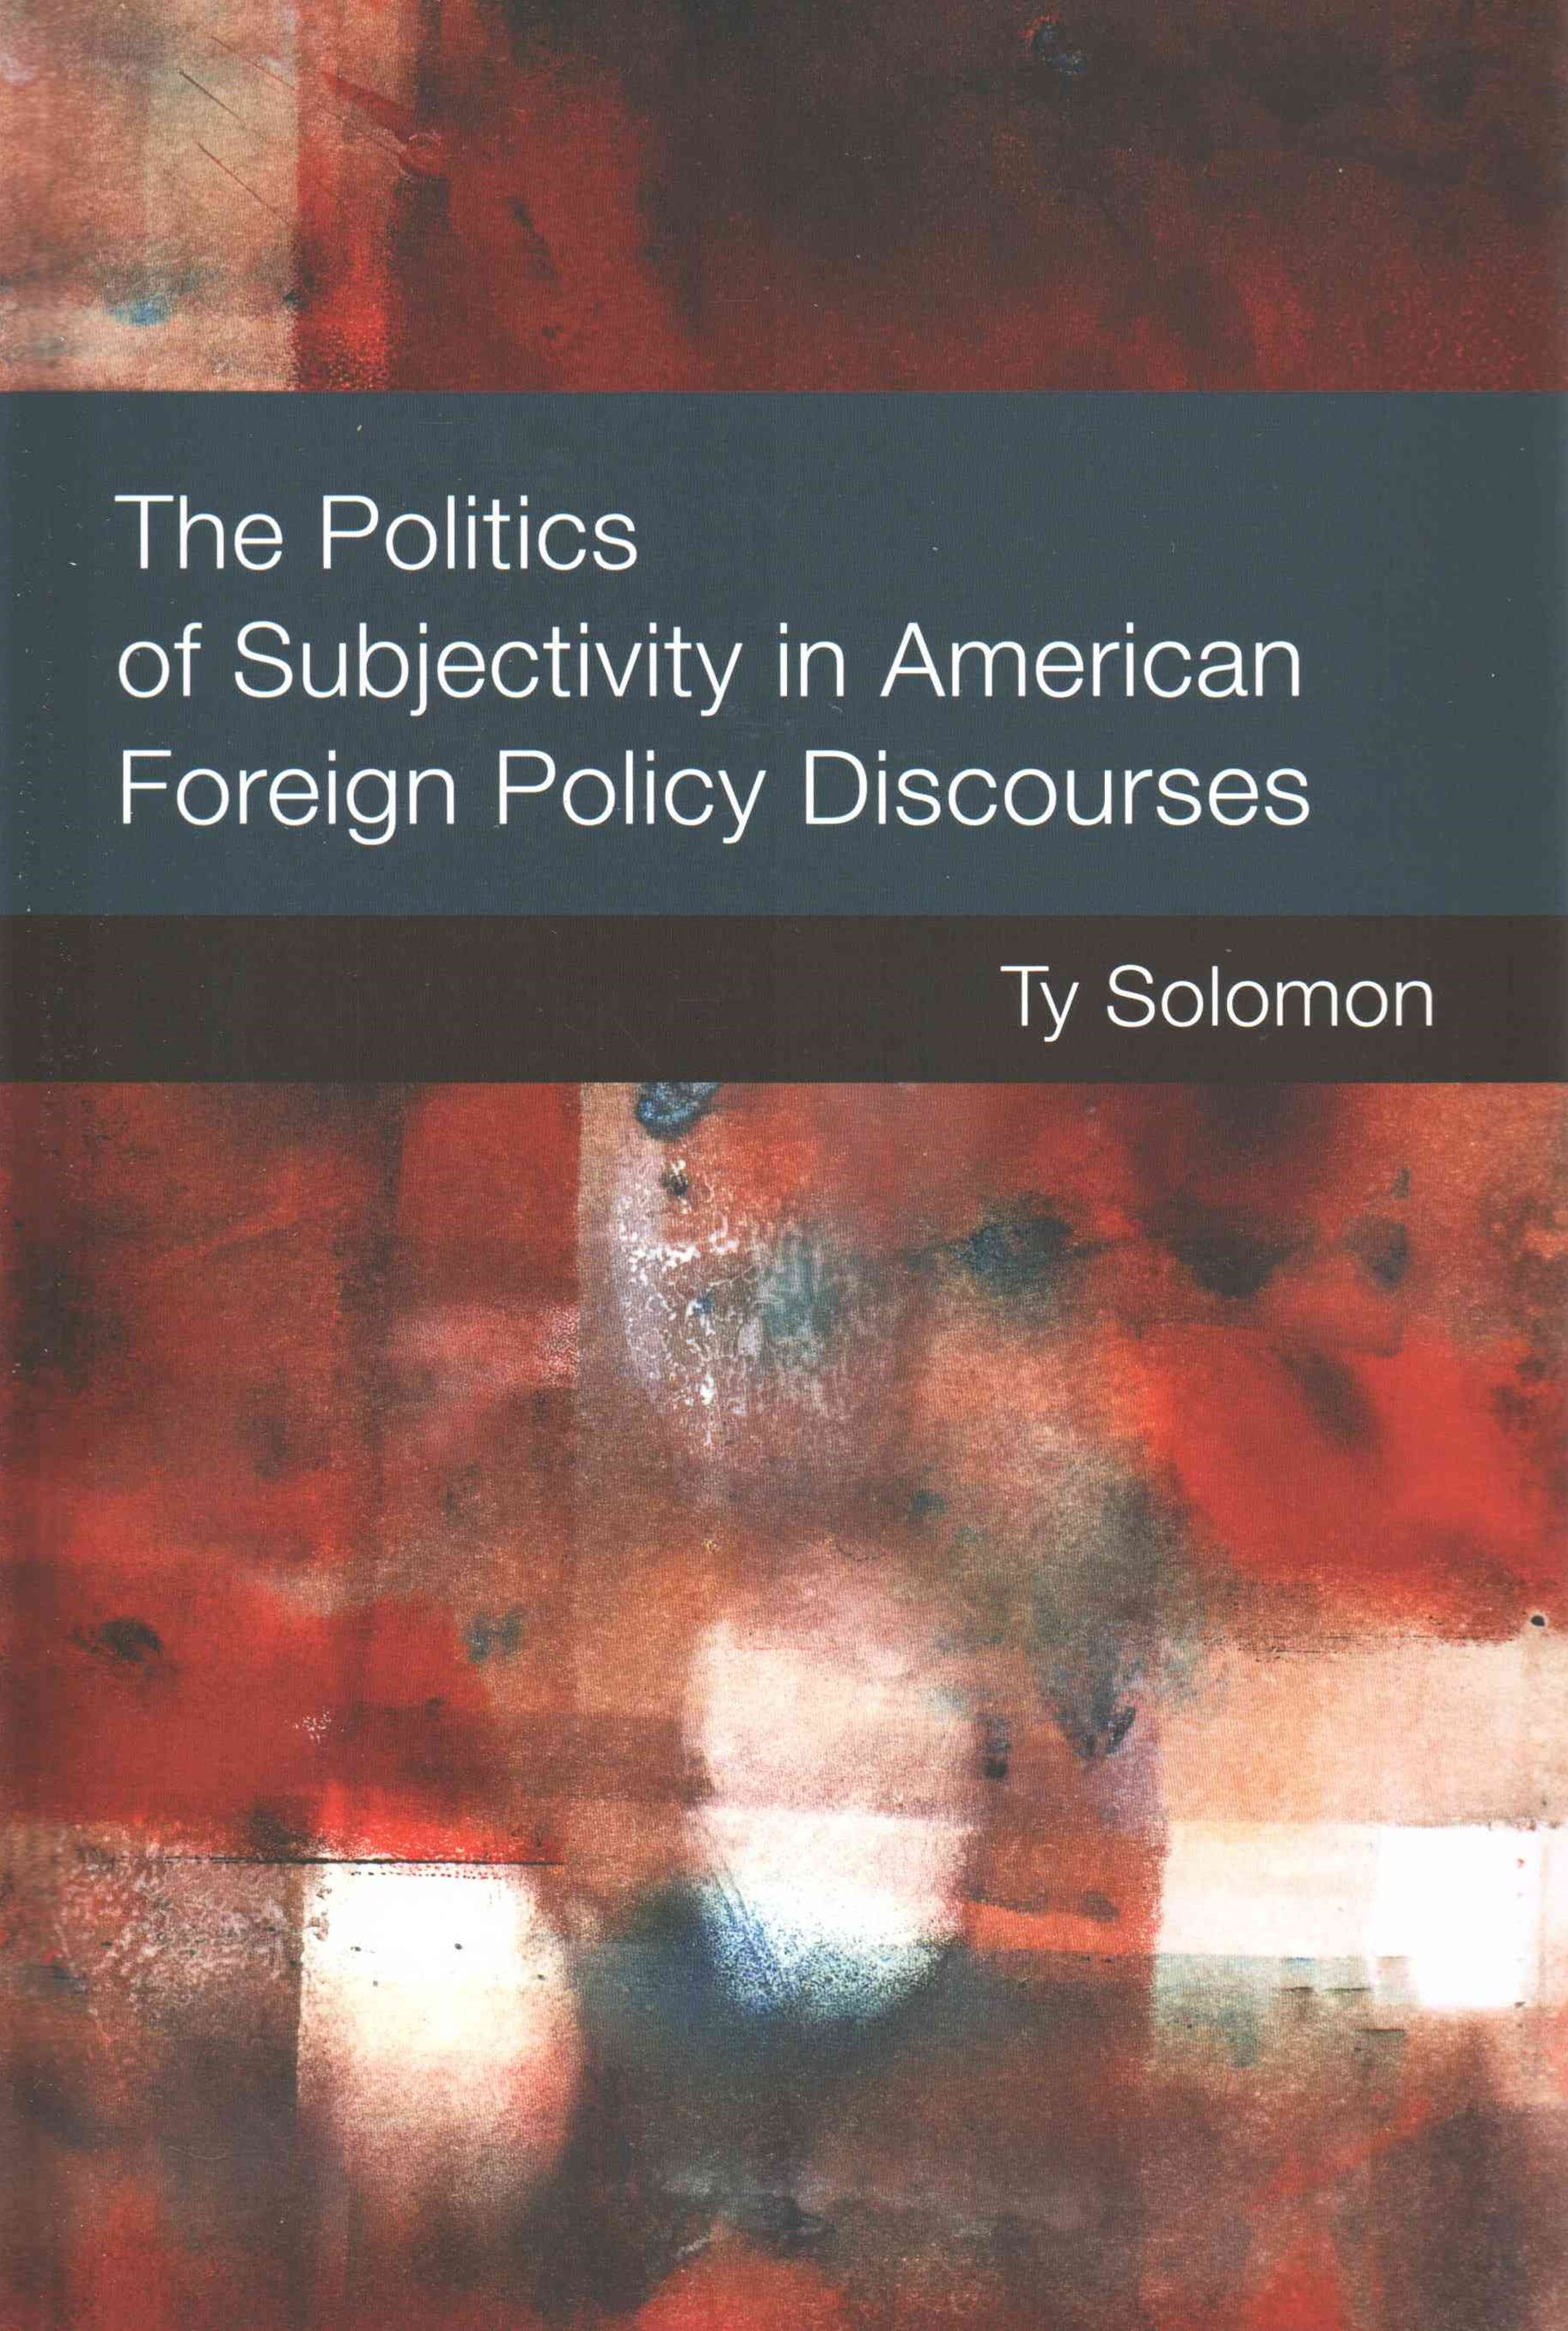 Politics of Subjectivity in American Foreign Policy Discourses